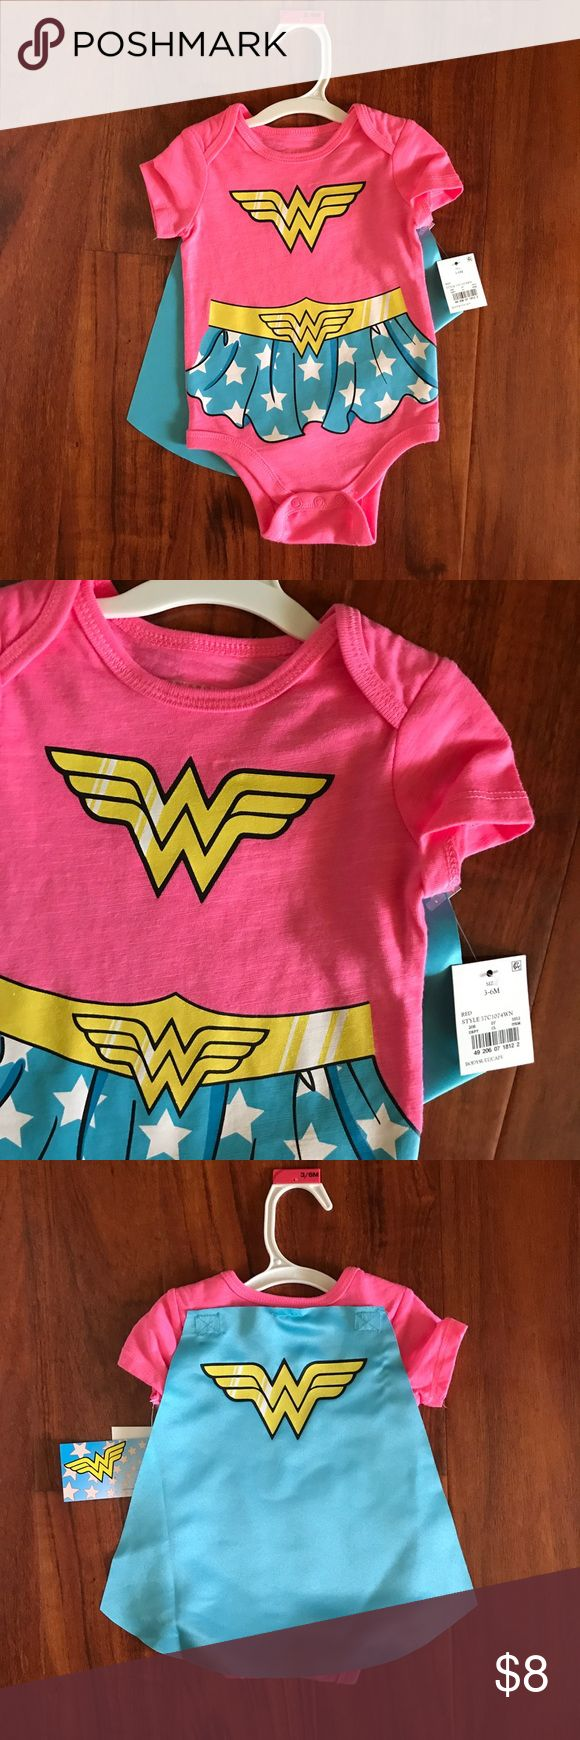 NWT Wonder Woman Cape Onesie Brand new with tags baby girl pink and blue Wonder Woman onesie with matching cape. Size 3-6 months. One Pieces Bodysuits